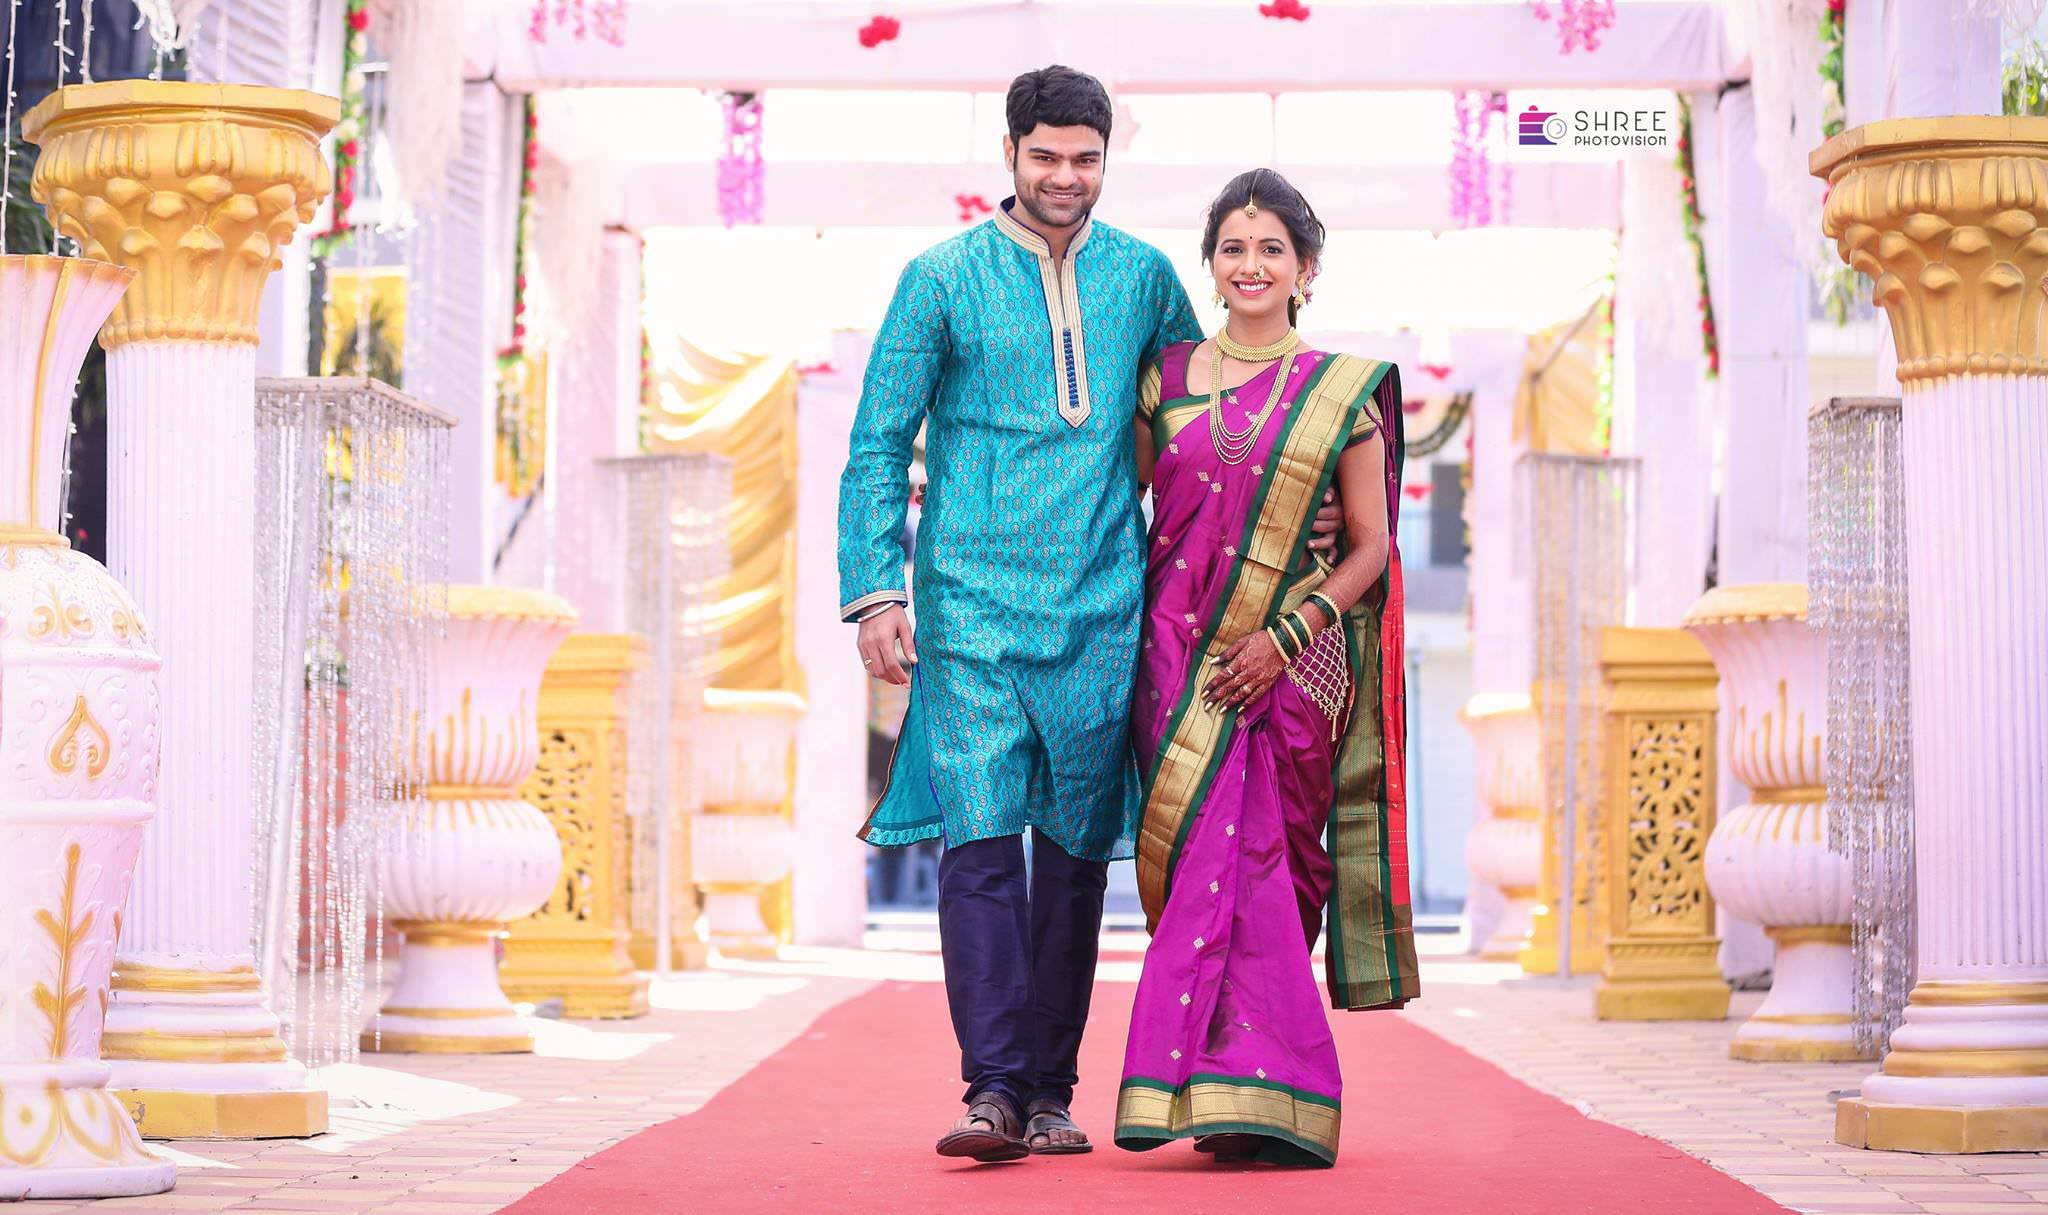 Mayuri Wagh Piyush Ranade Marathi Actors marriage Photos - Beautiful Traditional Wedding Dresses